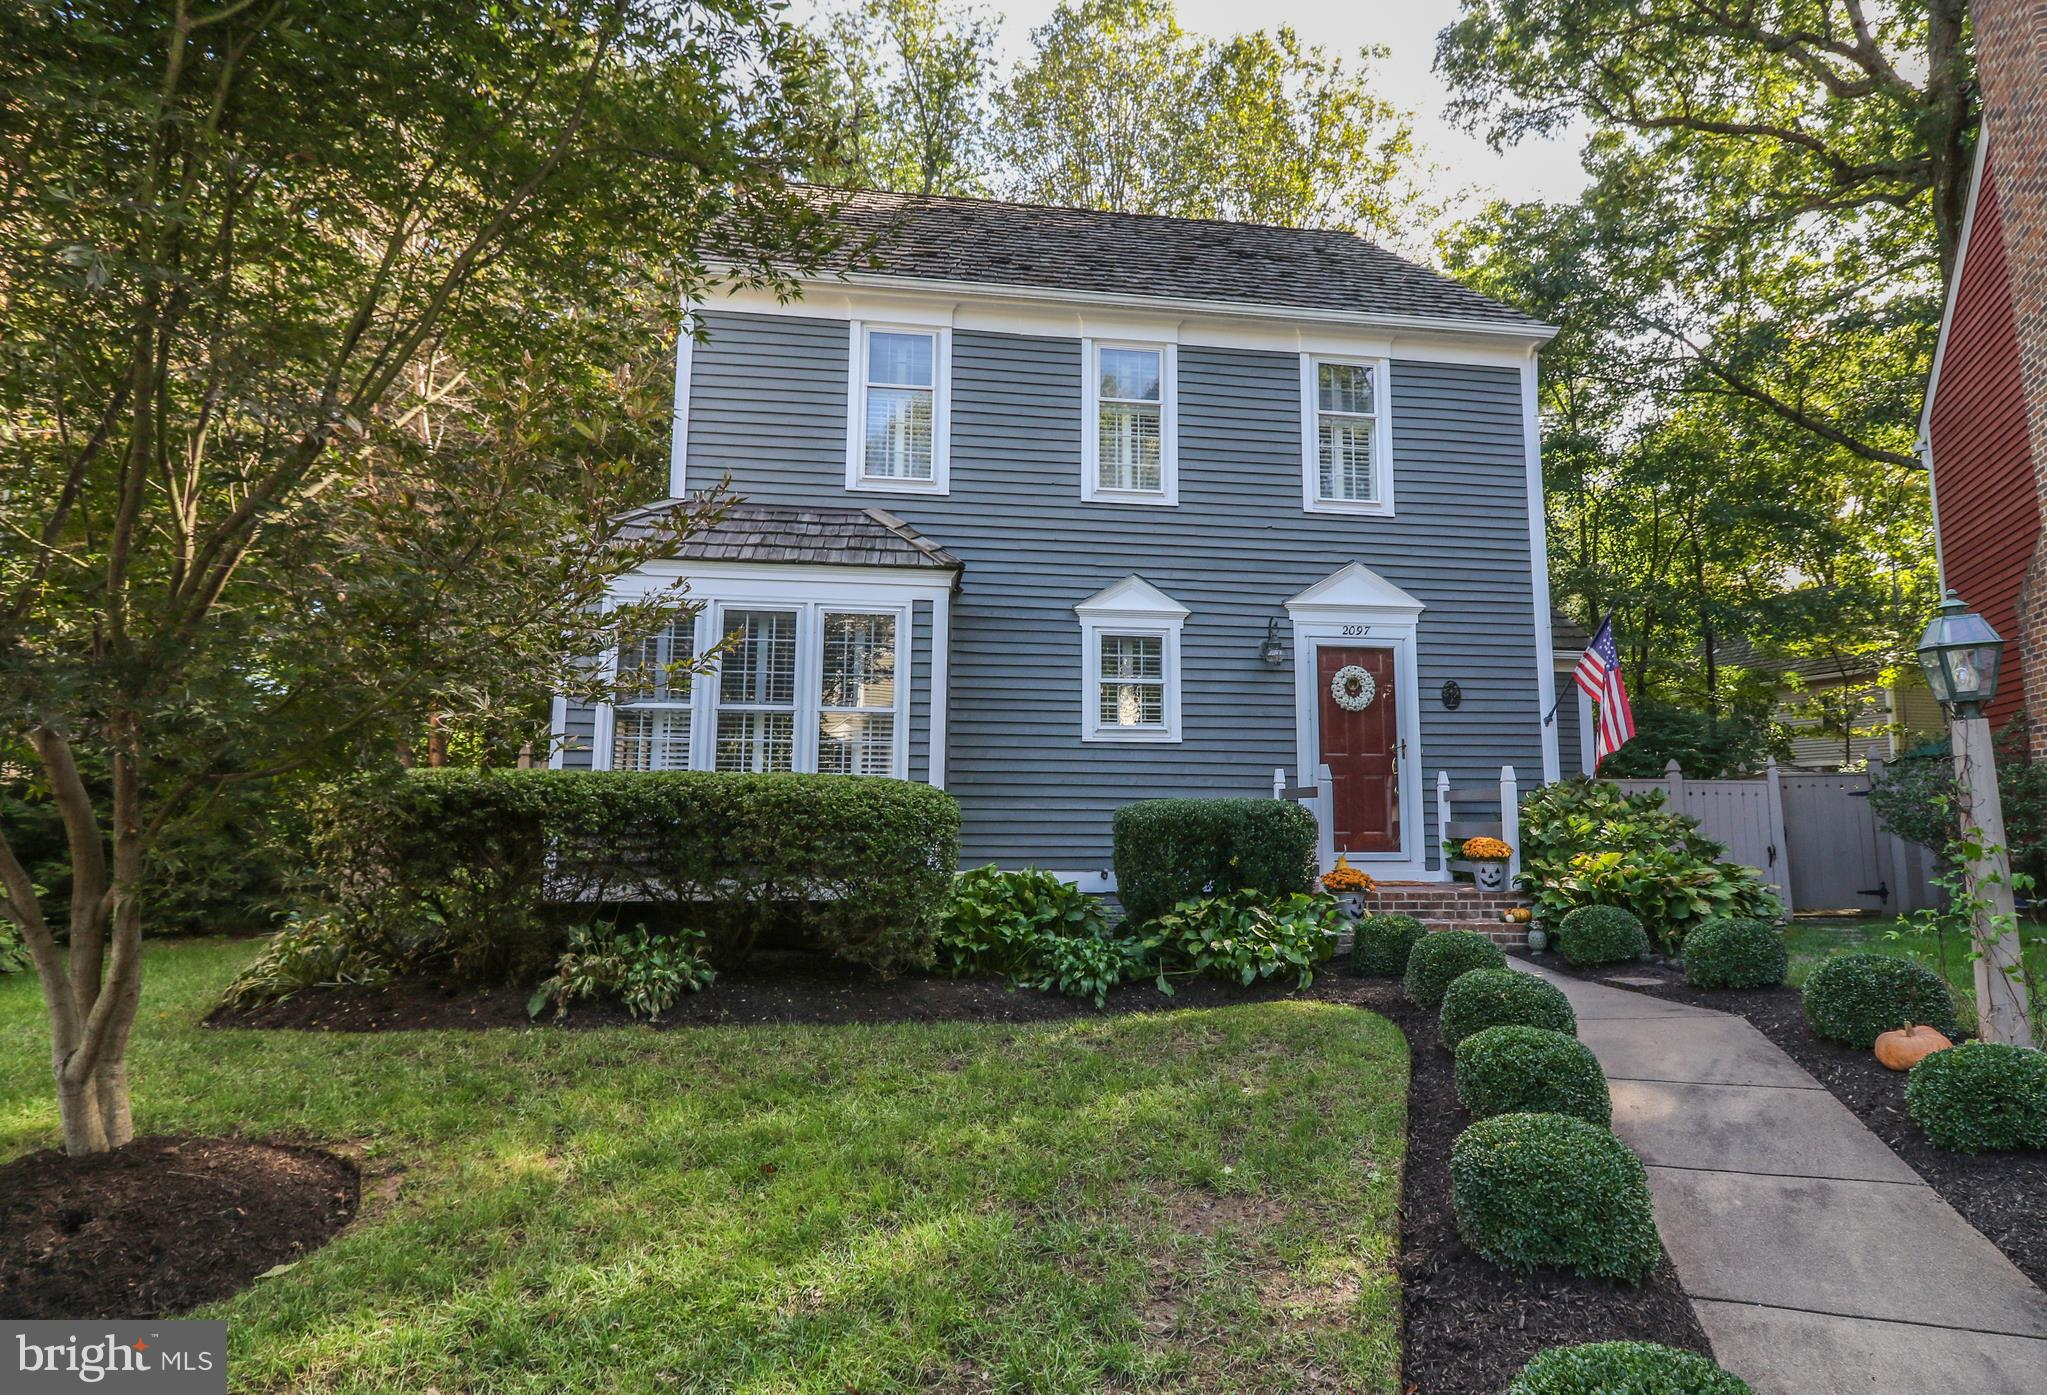 Renovated in the heart of Reston! Charming Saltbox Colonial sited on best lot in neighborhood at end